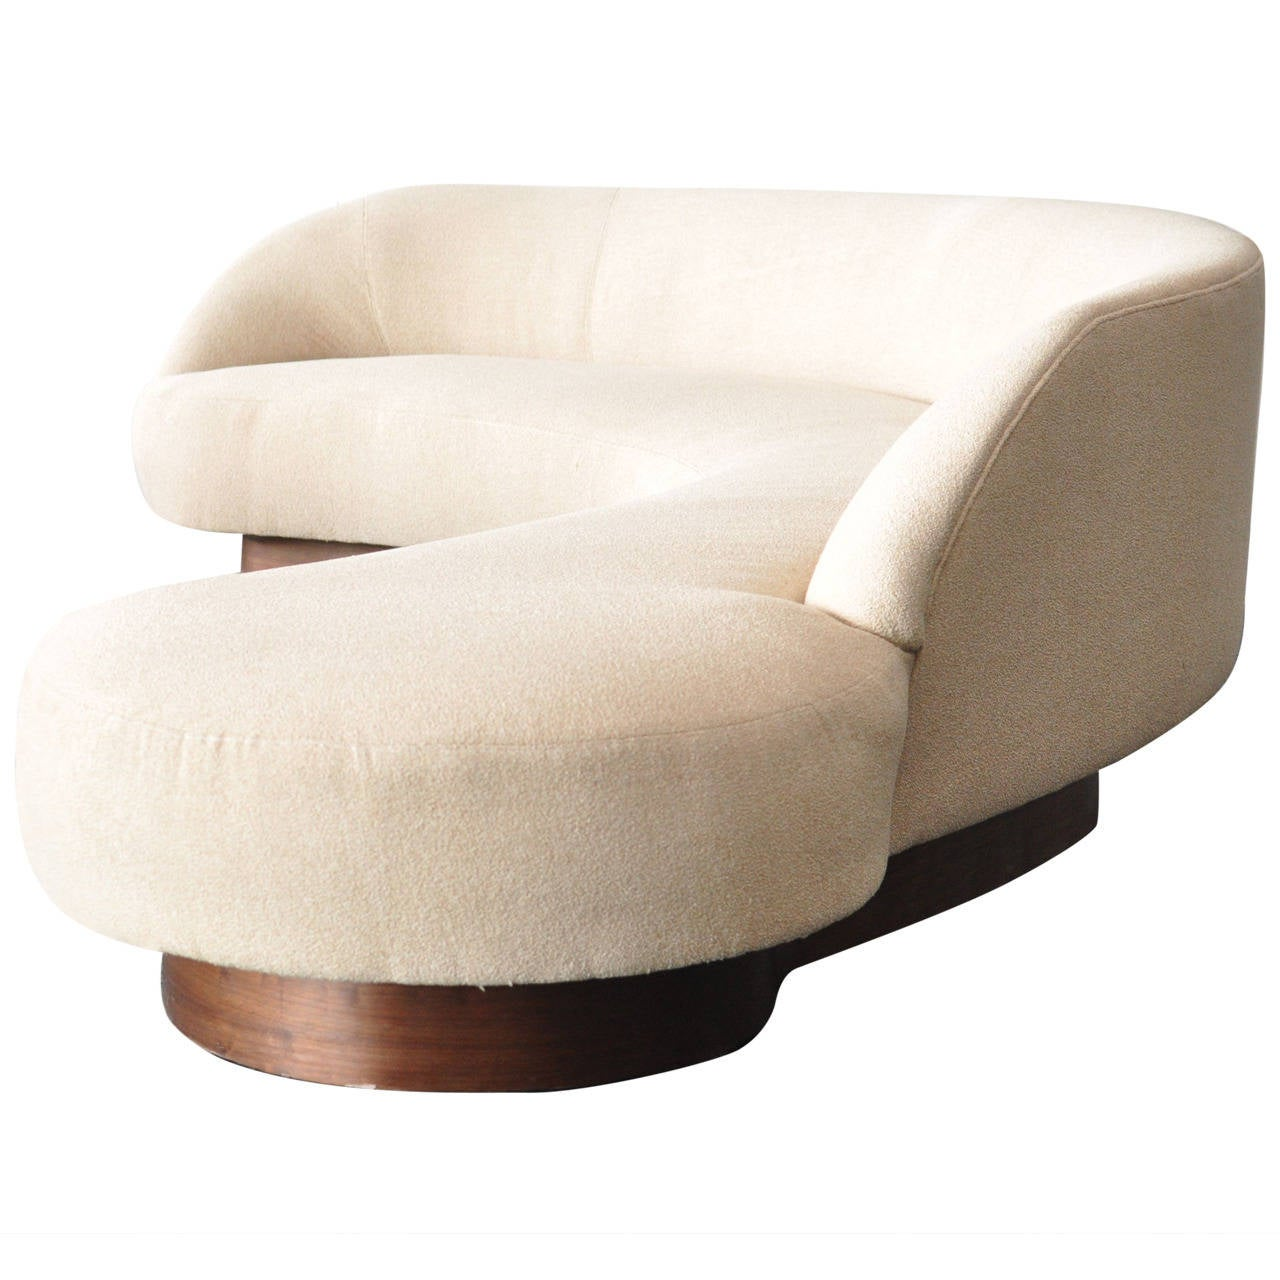 Large Serpentine Sofa by Vladimir Kagan for Directional 1